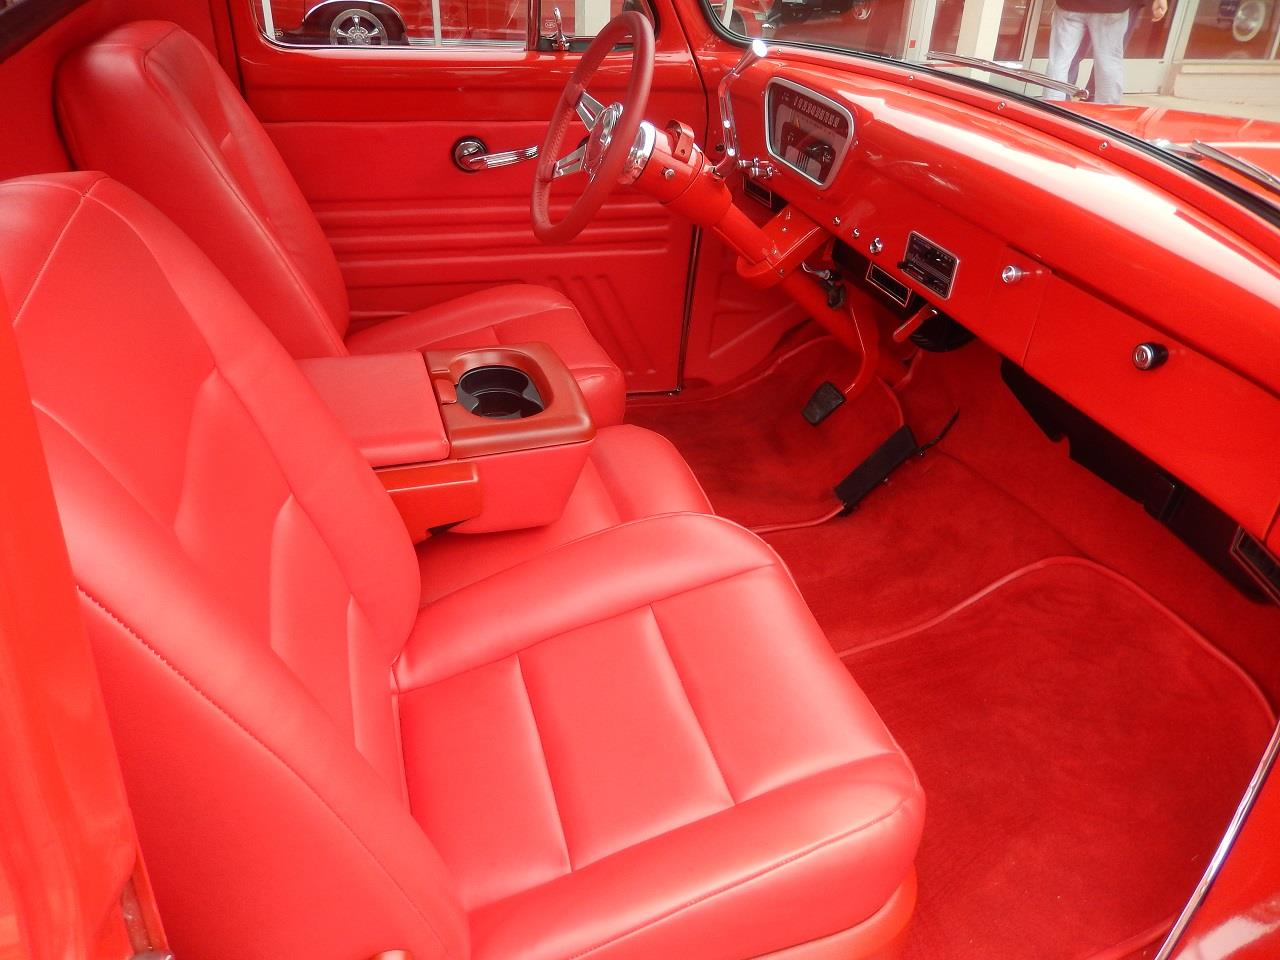 1955 Ford F100 For Sale Cc 1149342 Seat Large Picture Of Offered By Southern Motors Omu6